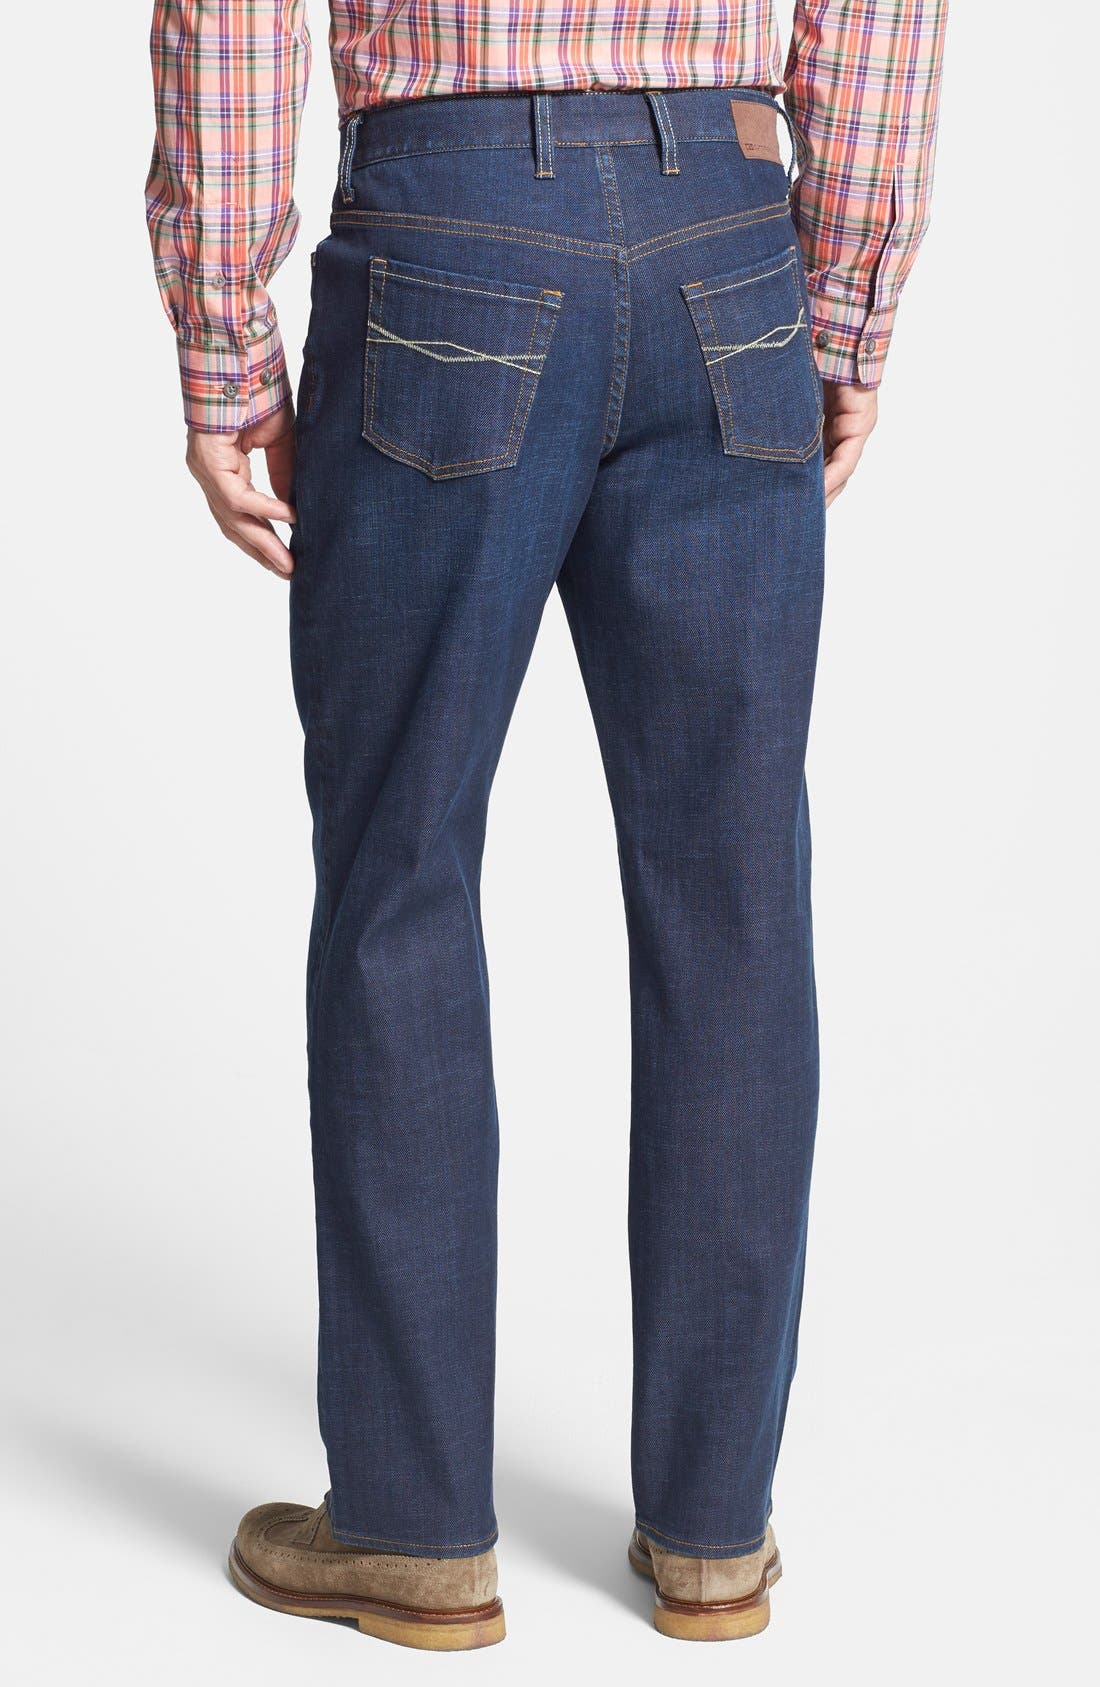 Greenwood Relaxed Fit Jeans,                             Alternate thumbnail 2, color,                             Venice Blue